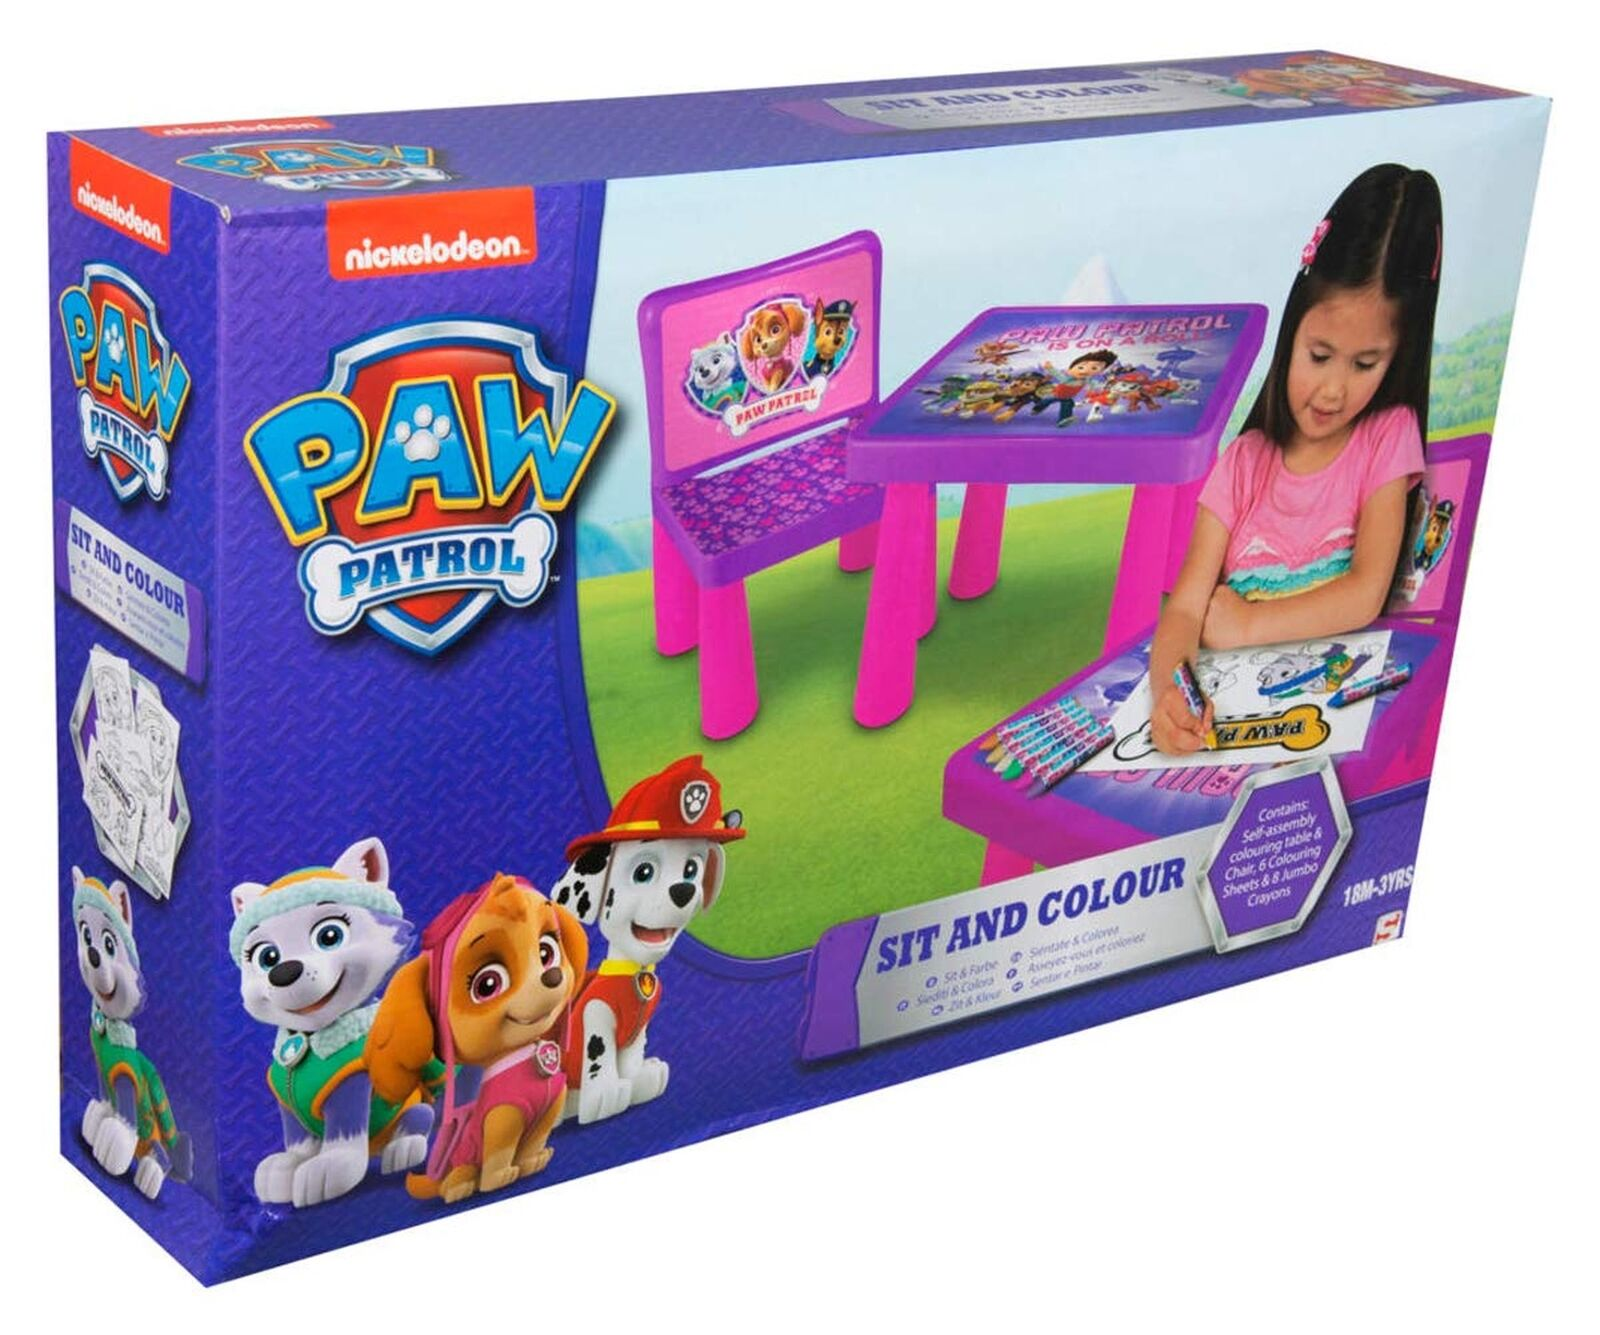 Sambro PWP9-Y17-4144-1 Paw Patrol Girls Sit and Colour Table and Chair Set, M...